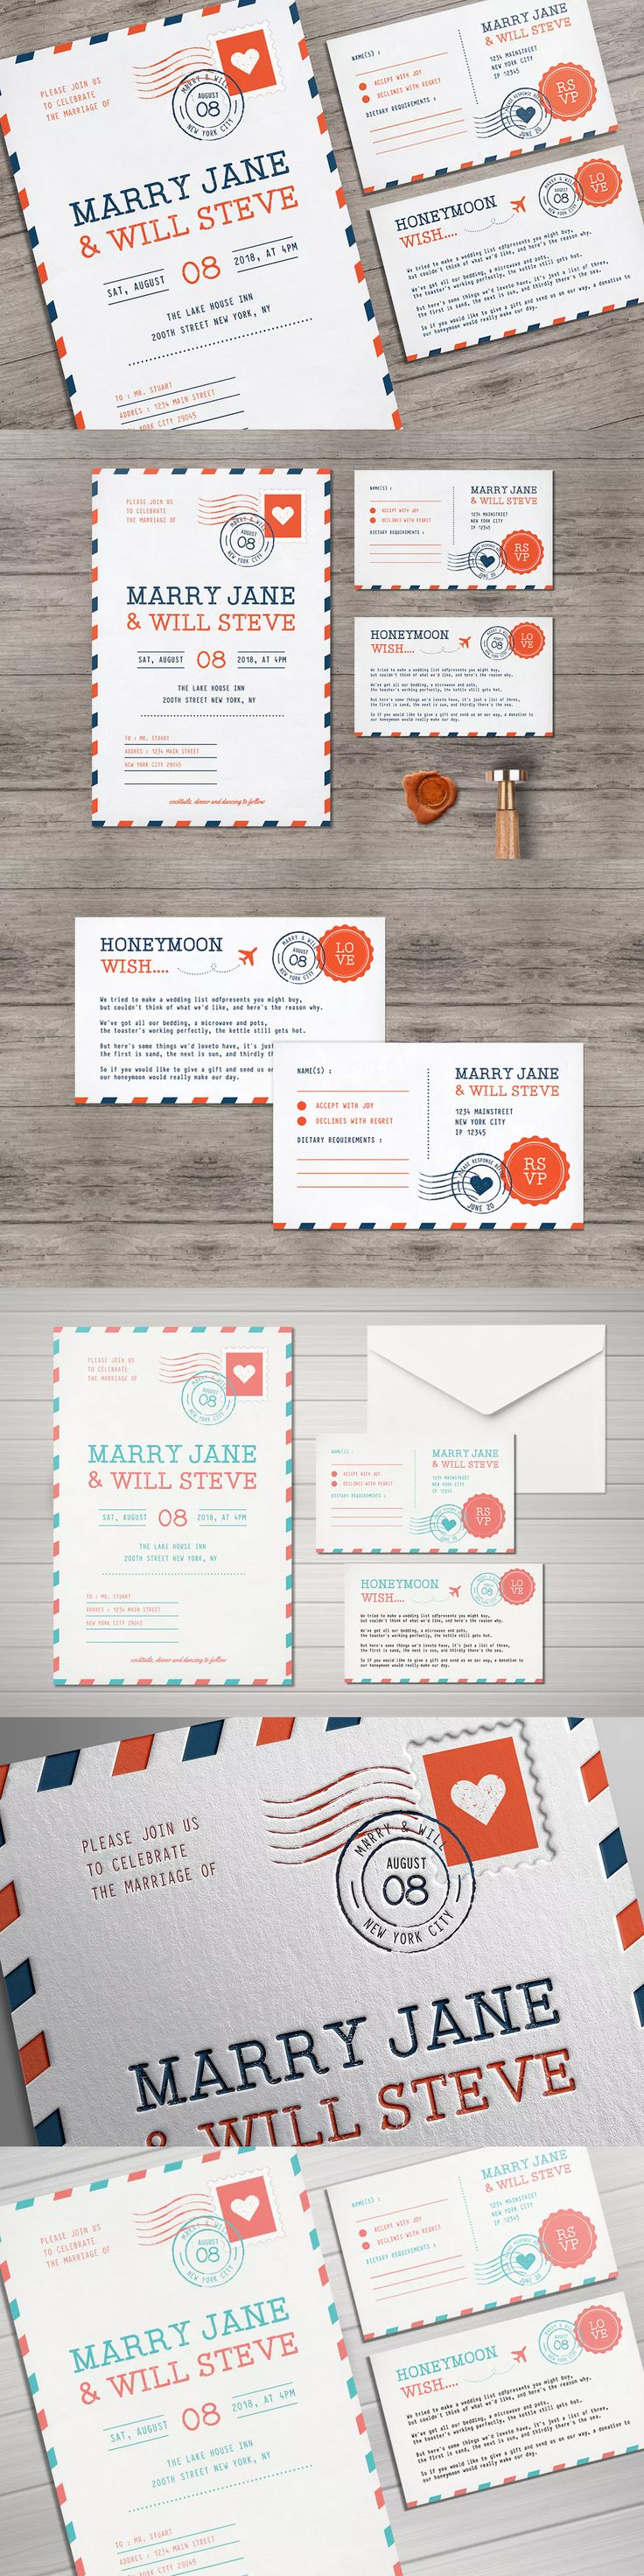 Best 122 Wedding Invitation Card Templates Ideas On Pinterest